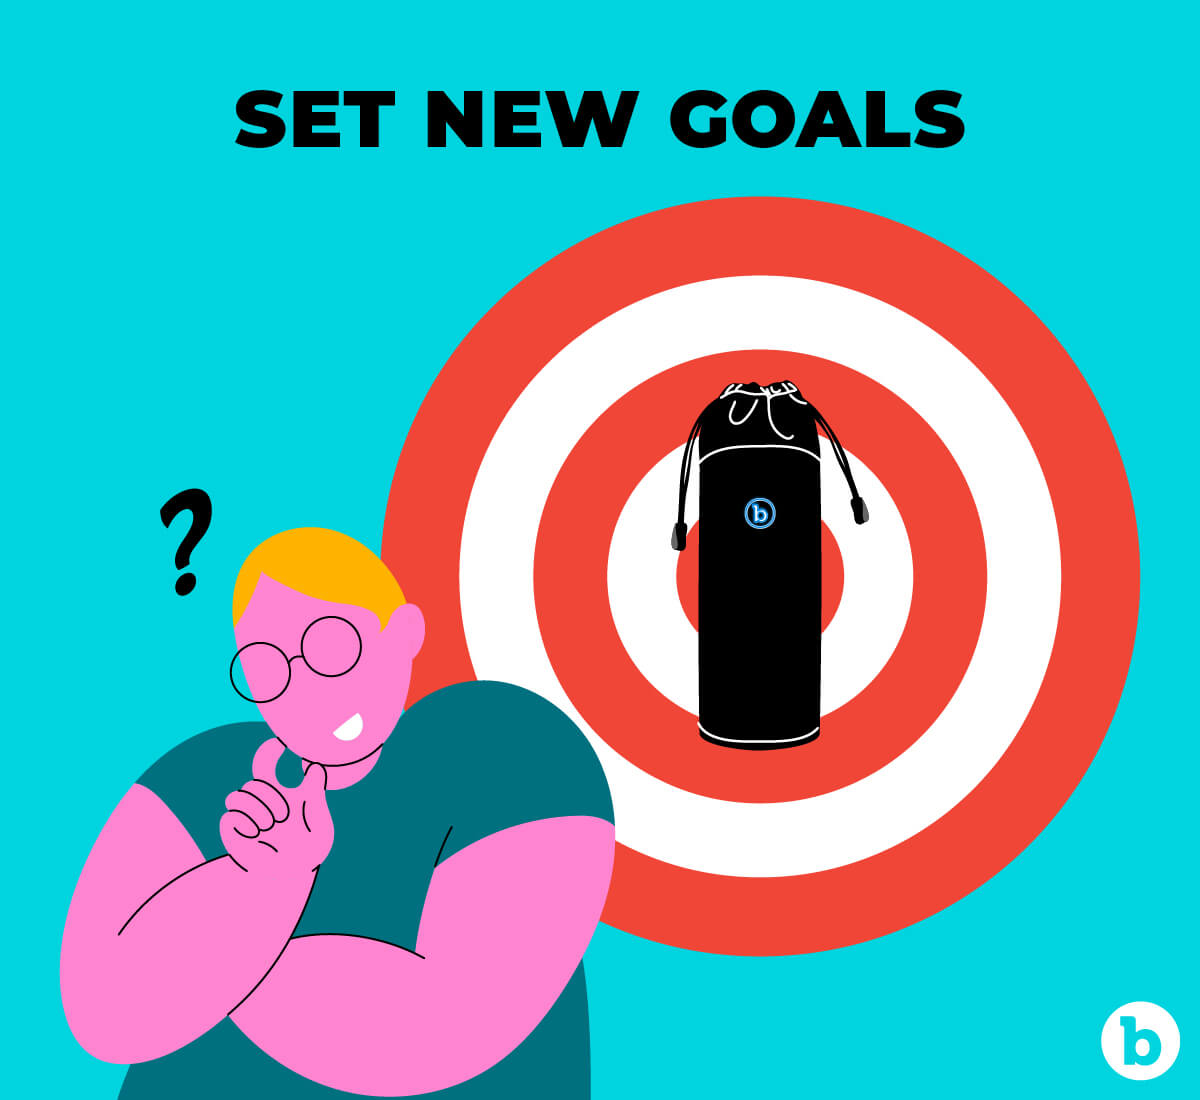 Set yourself new anal play goals in 2021